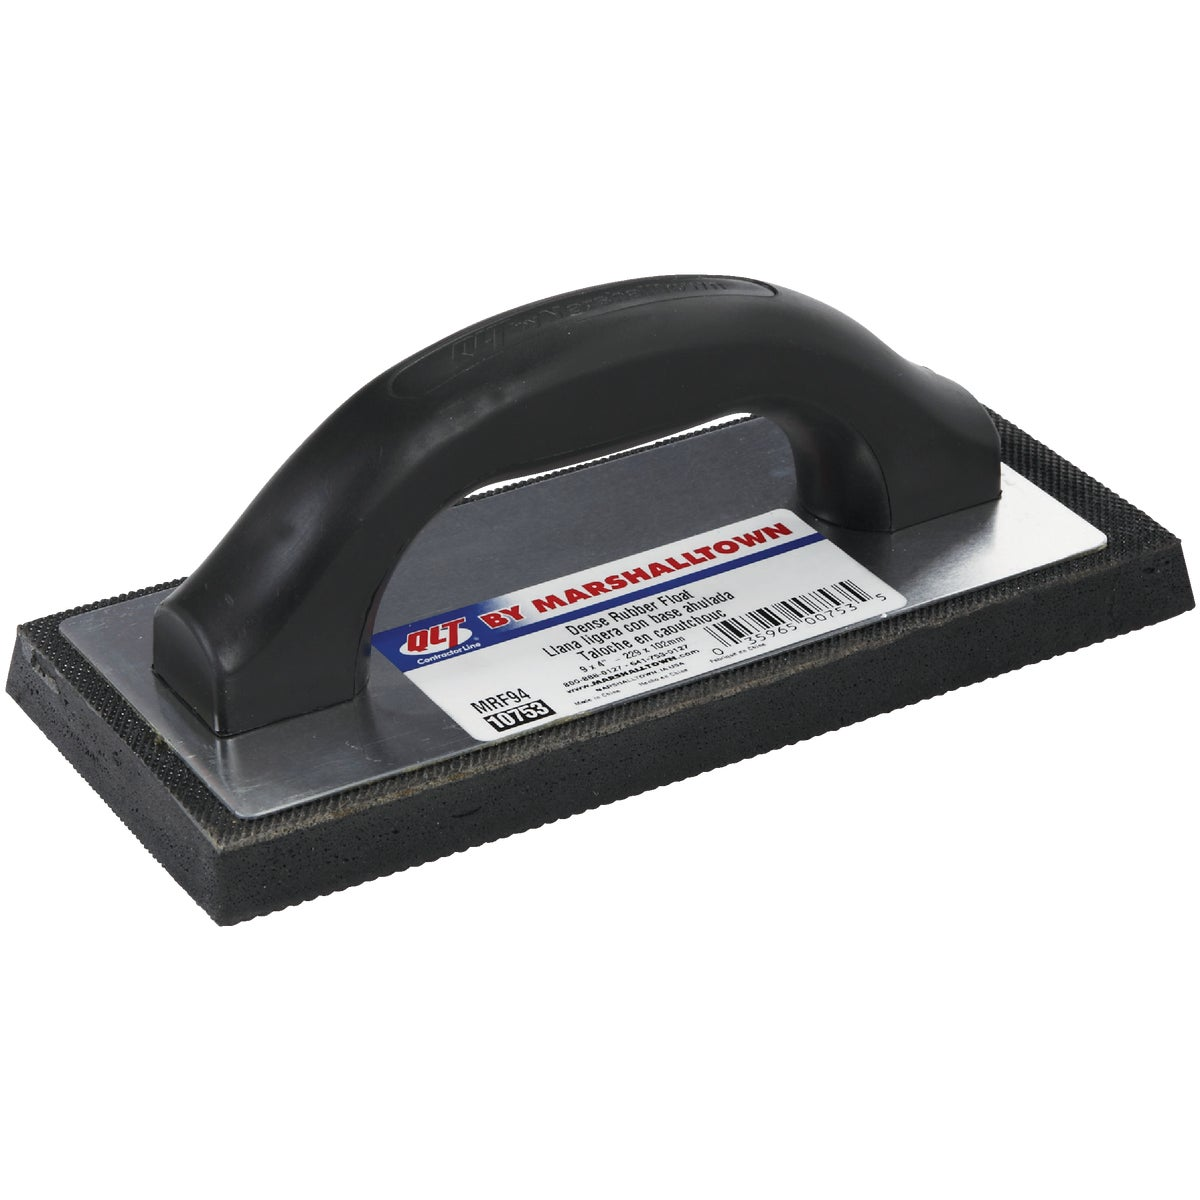 9X4 BLK RUBBER FLOAT - 10753 by Marshalltown Trowel